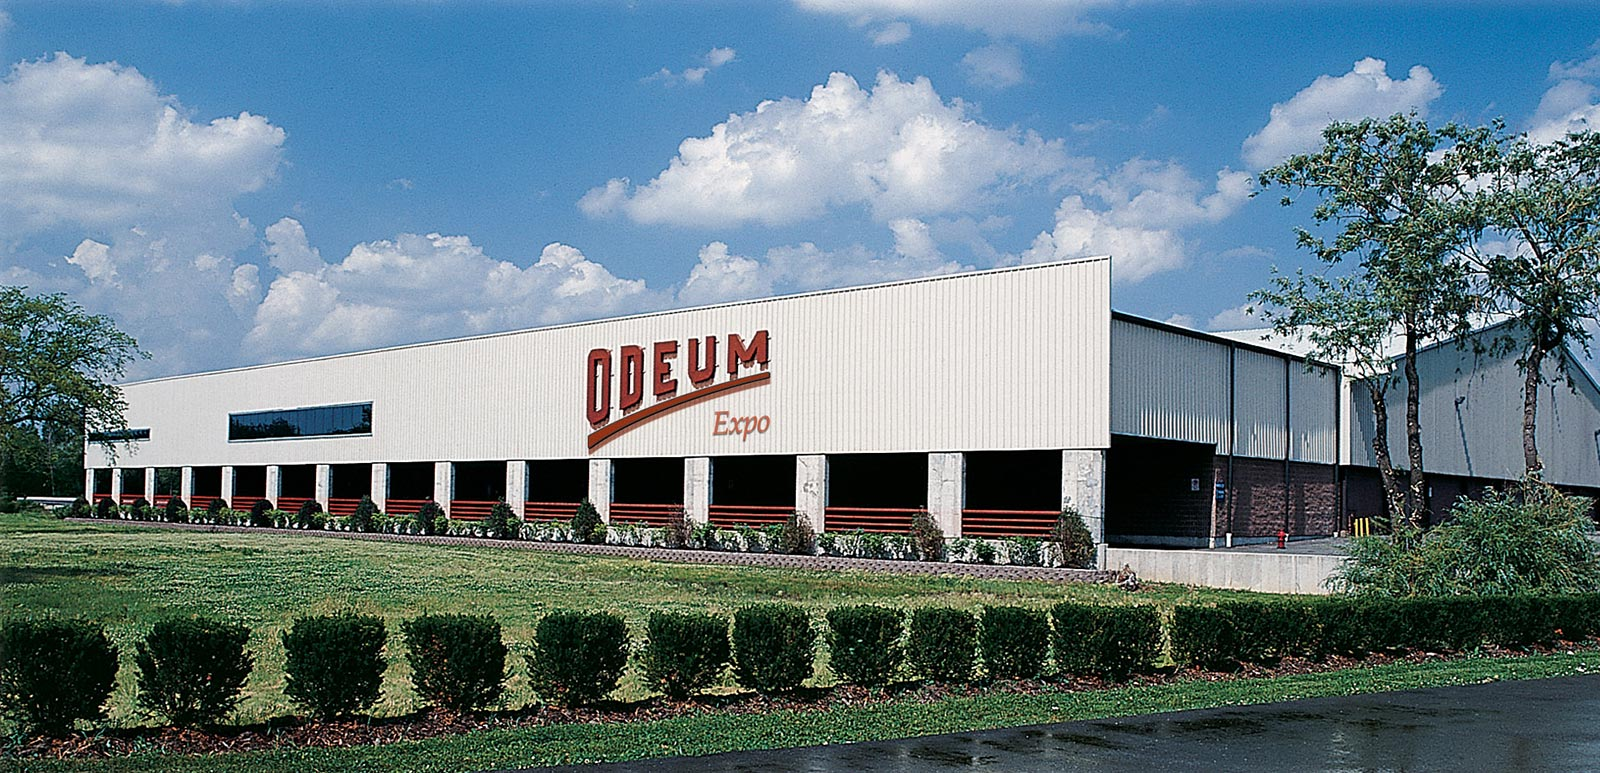 Photo of the exterior of the Odeum Expo in Addison, IL